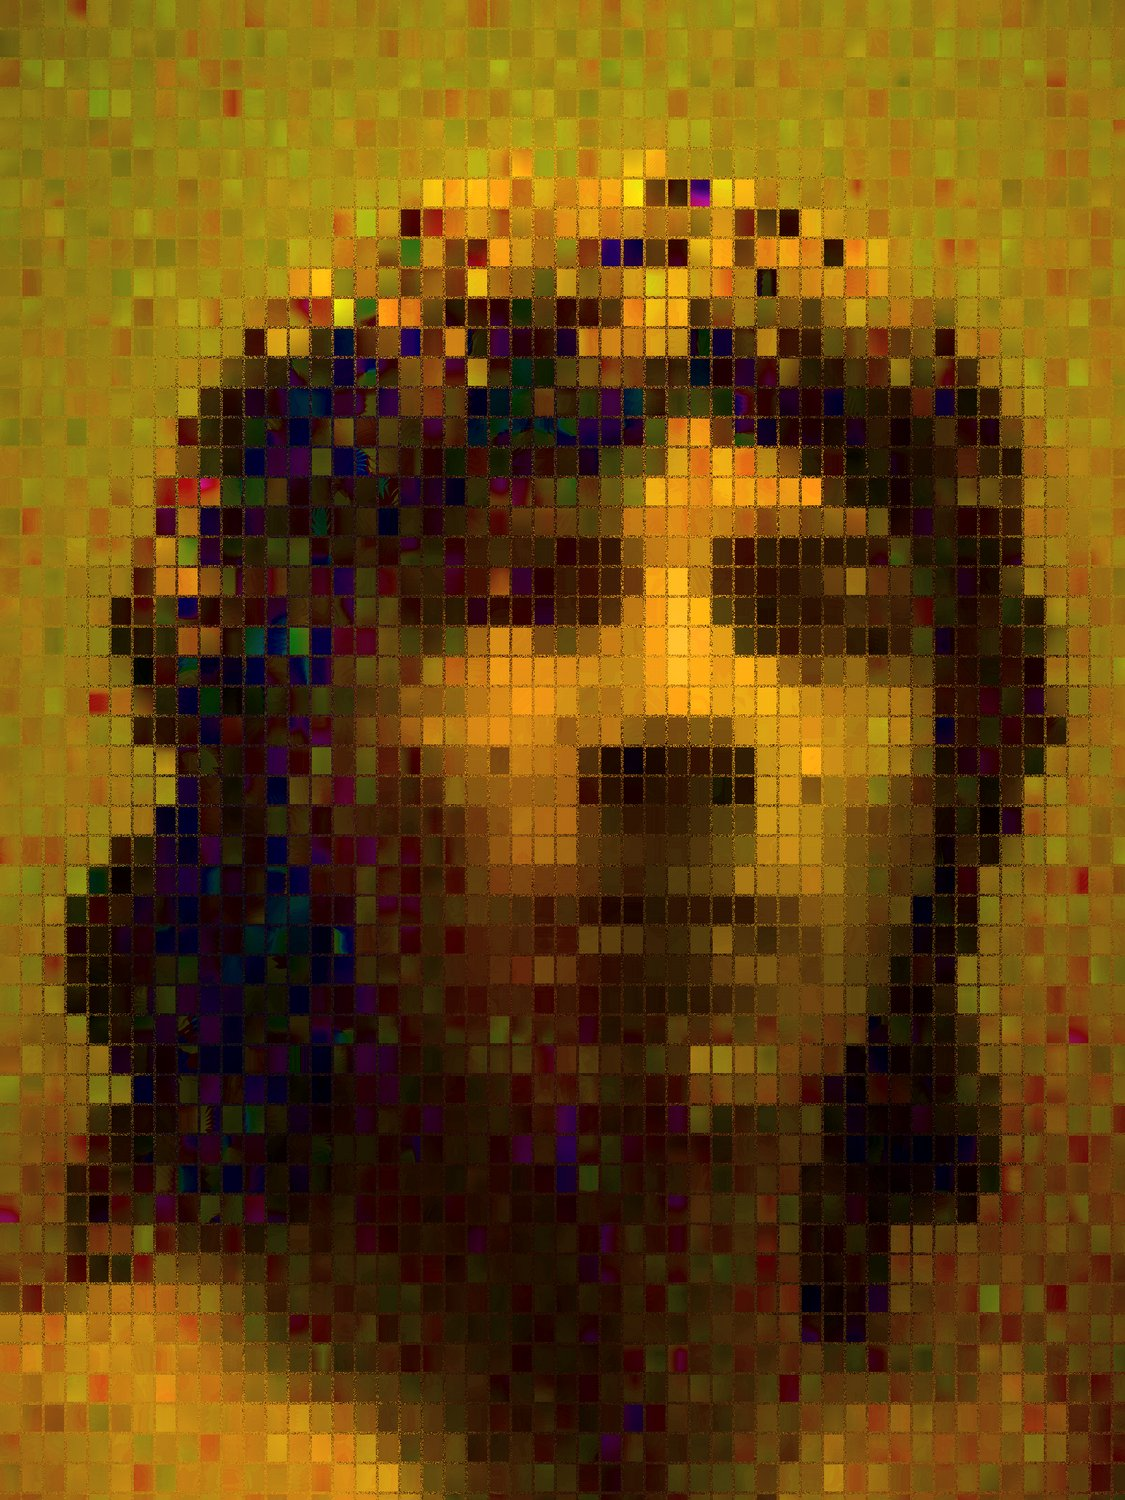 - Impressionist Mosaic - - Mosaic Man<p> I shot this with a lens made by the Arcobaleno Company. <br>   It breaks the subject into separate planes of colored blocks. - exhibit in San Francisco - - - art  - photography - by Tony Karp